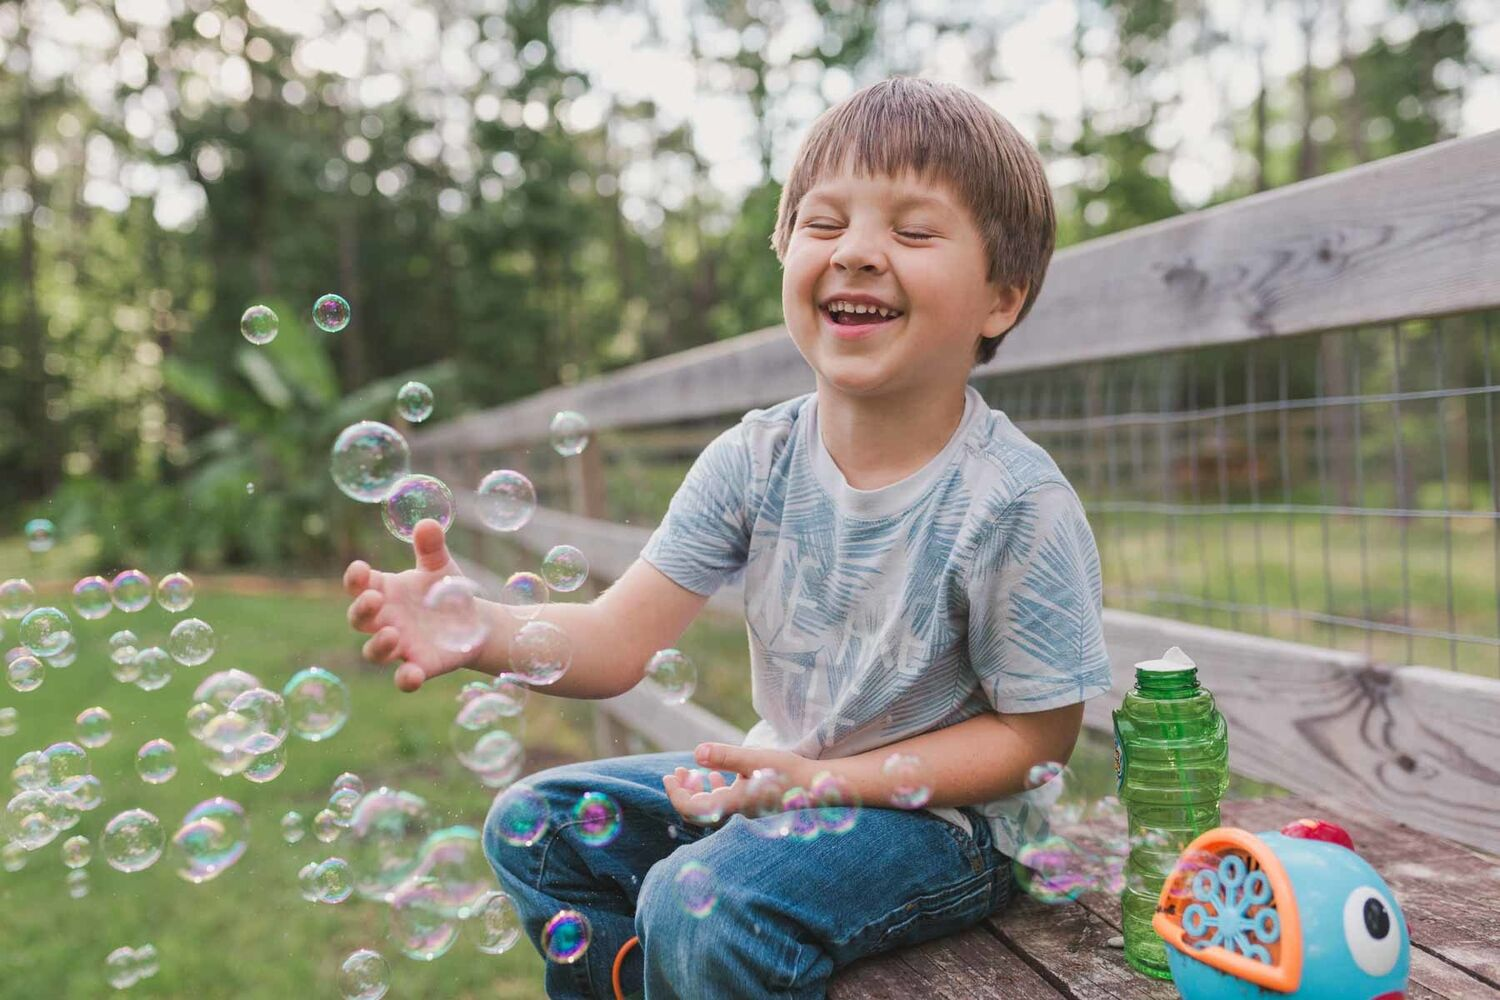 Boy Wearing Jeans And Tshirt Sitting On Bench Outside Playing With Bubbles